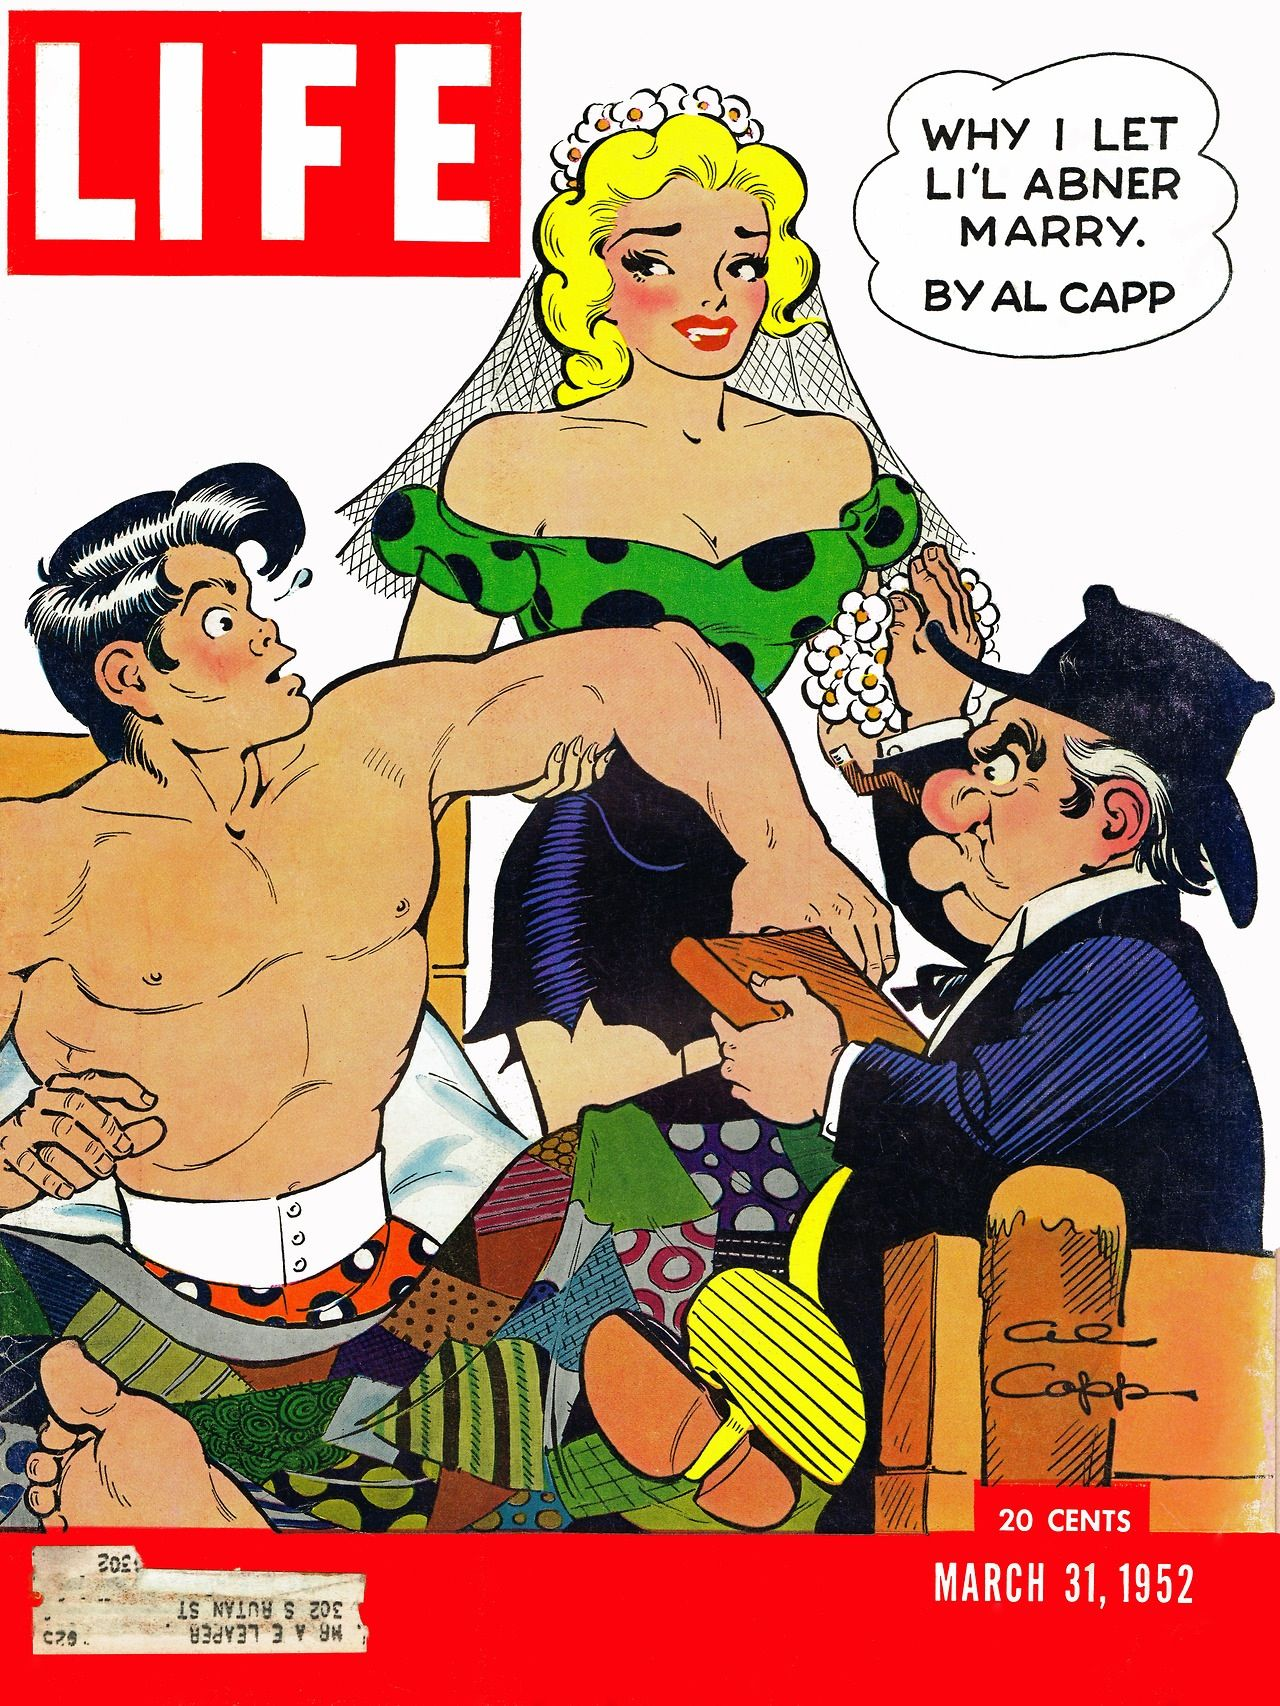 The March 31, 1952, issue of  Life  featuring the happily married couple